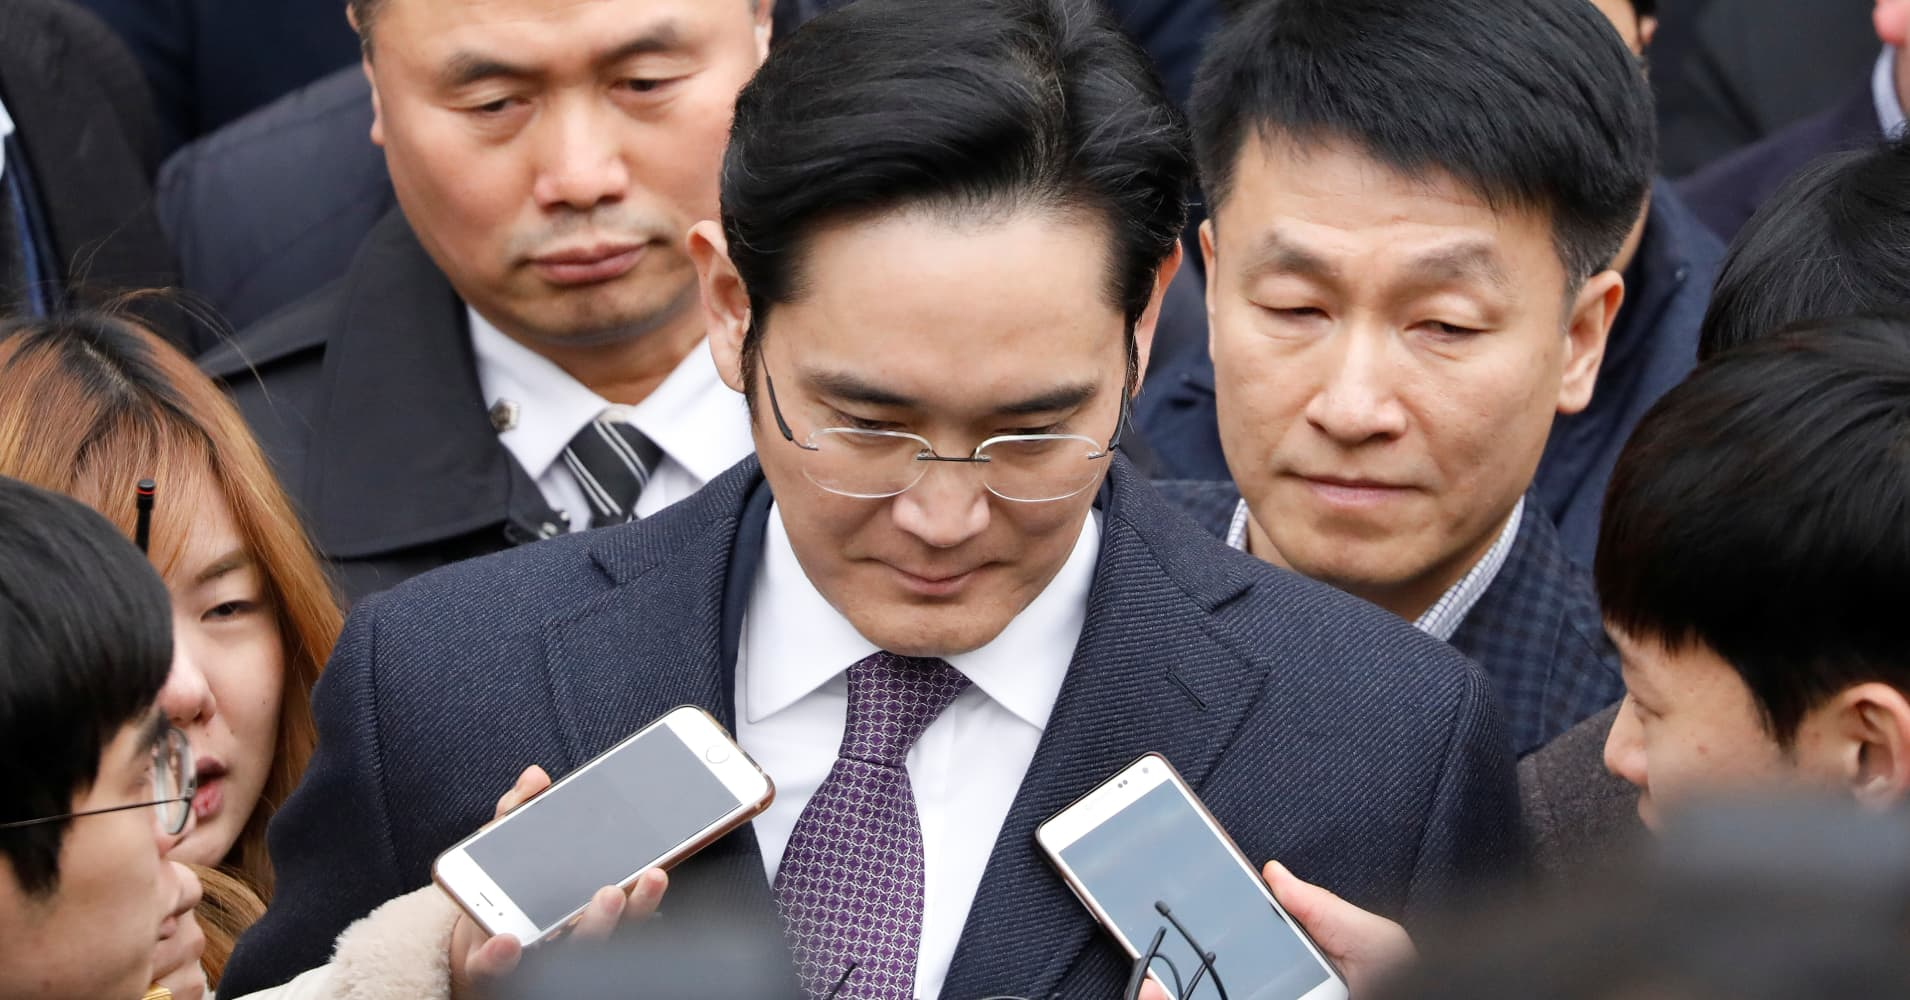 With Samsung scion held in small cell, South Korea continues probe